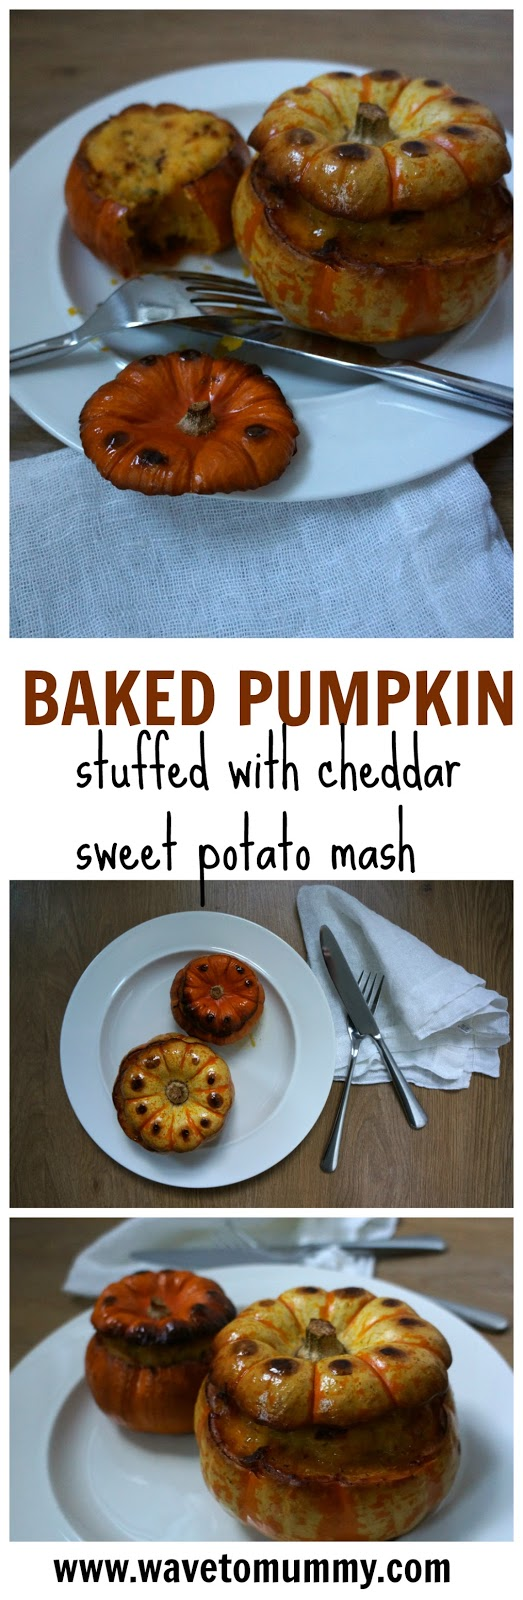 baked stuffed pumpkin with cheddar sweet potato mash